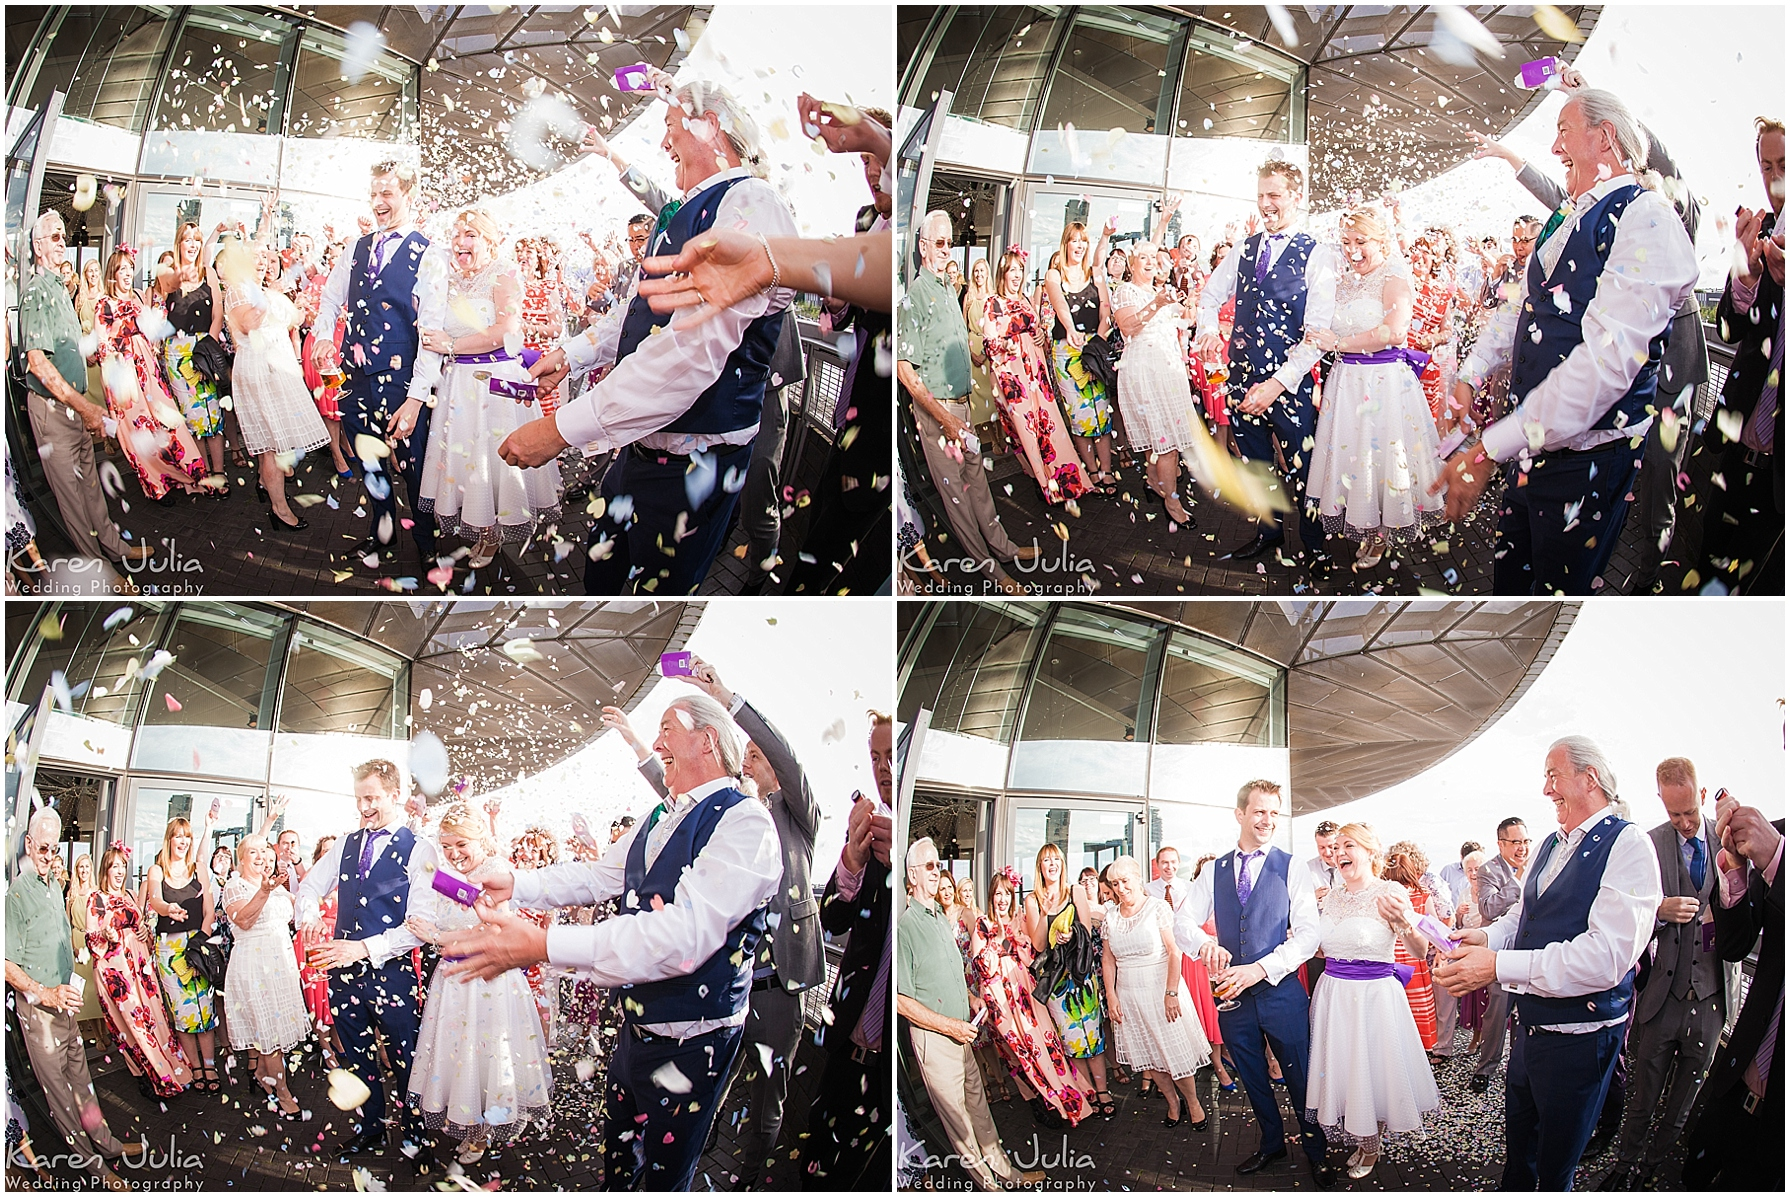 lowry theatre wedding confetti photo